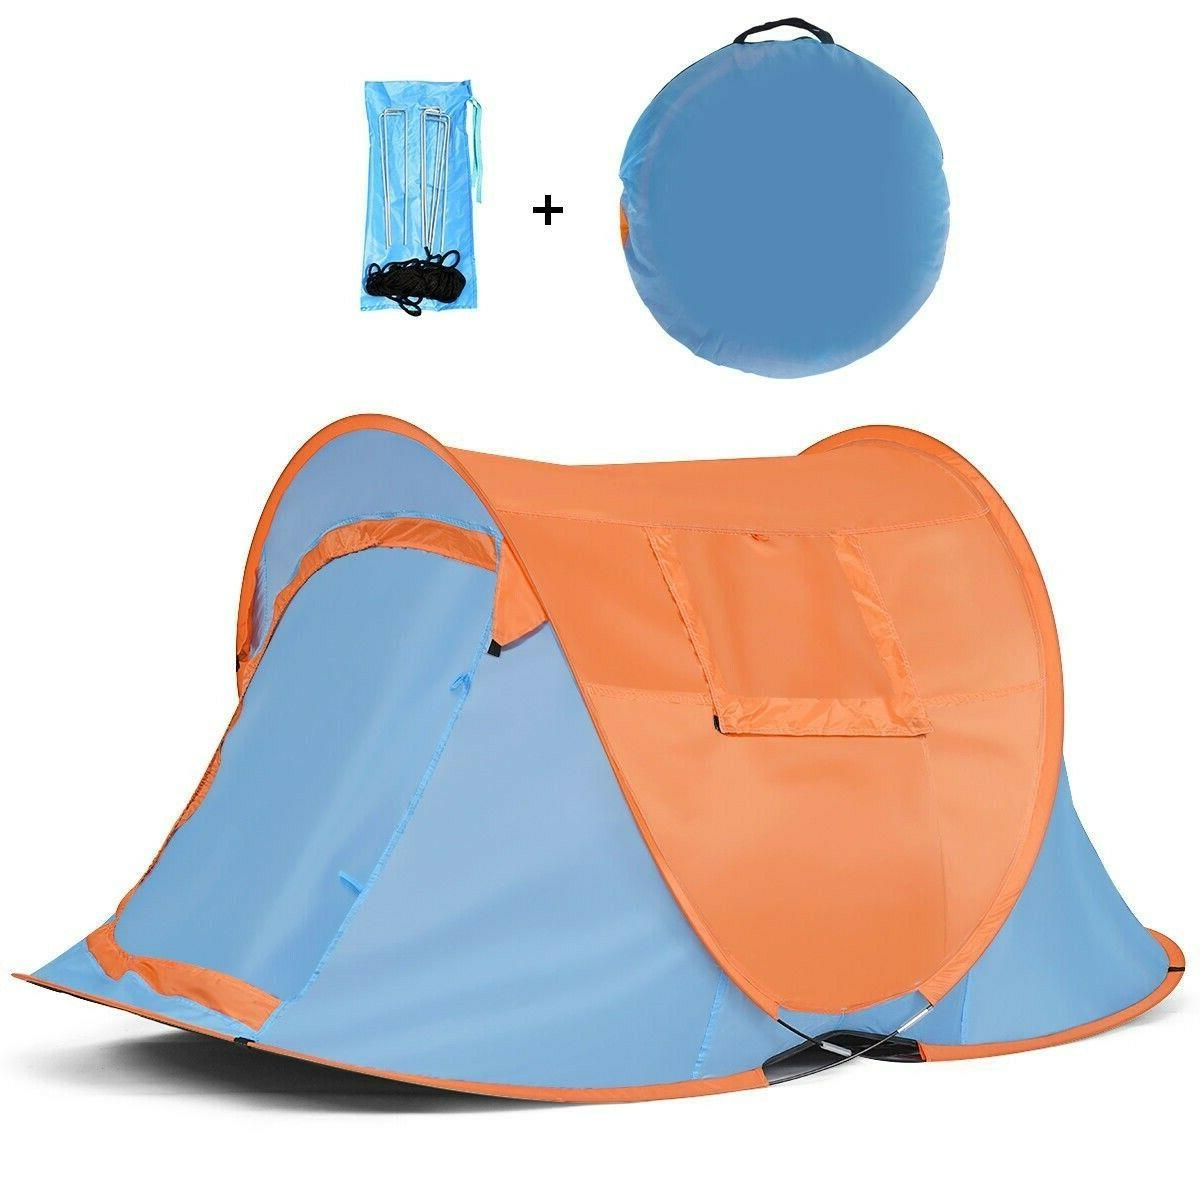 Instant Pop Up Portable Camping Person Shelter Bag